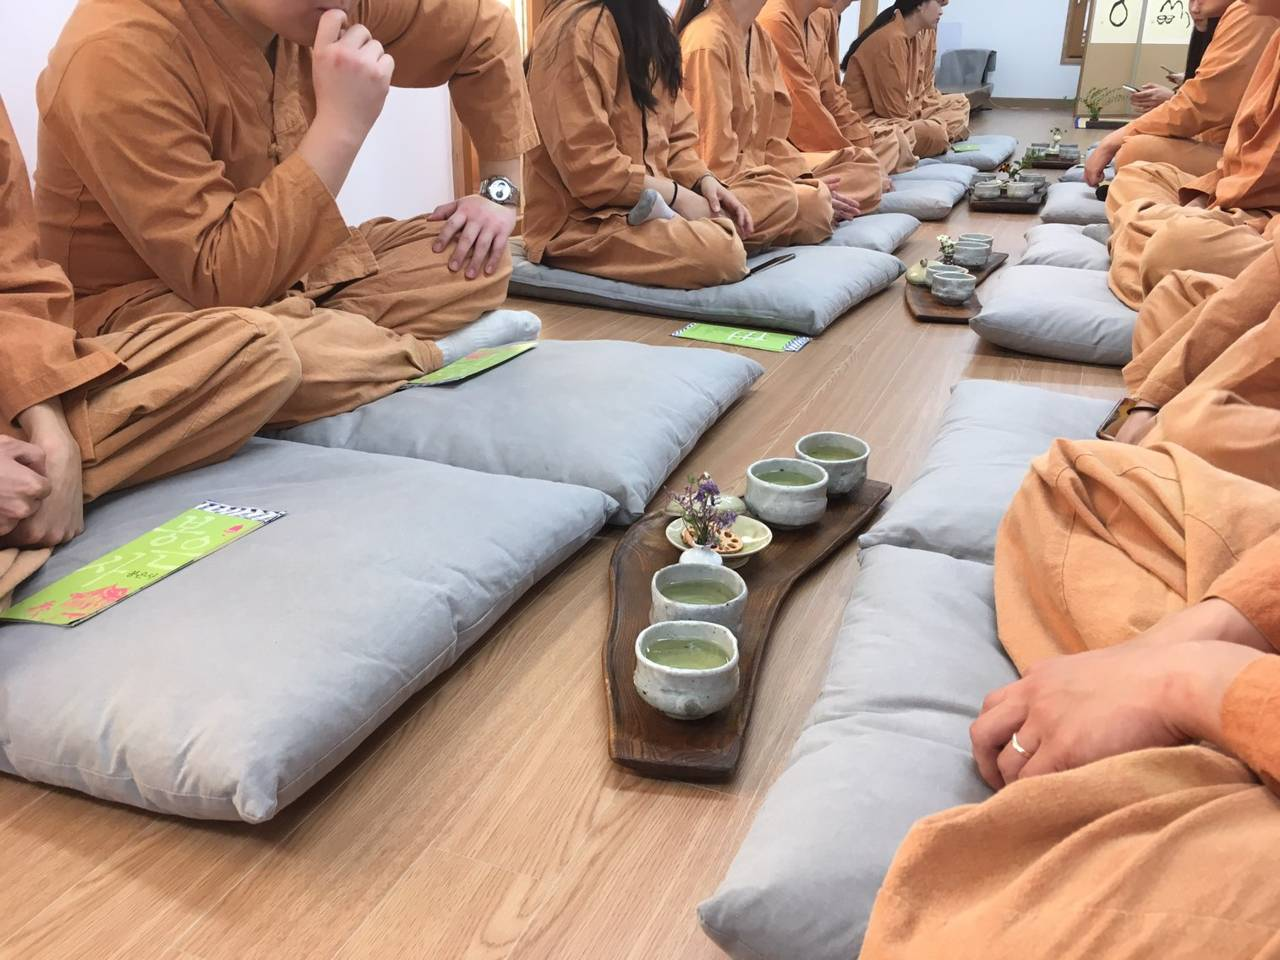 South Korea Seoul Temple Stay Bongeunsa Buddhism Travel Experience Tea